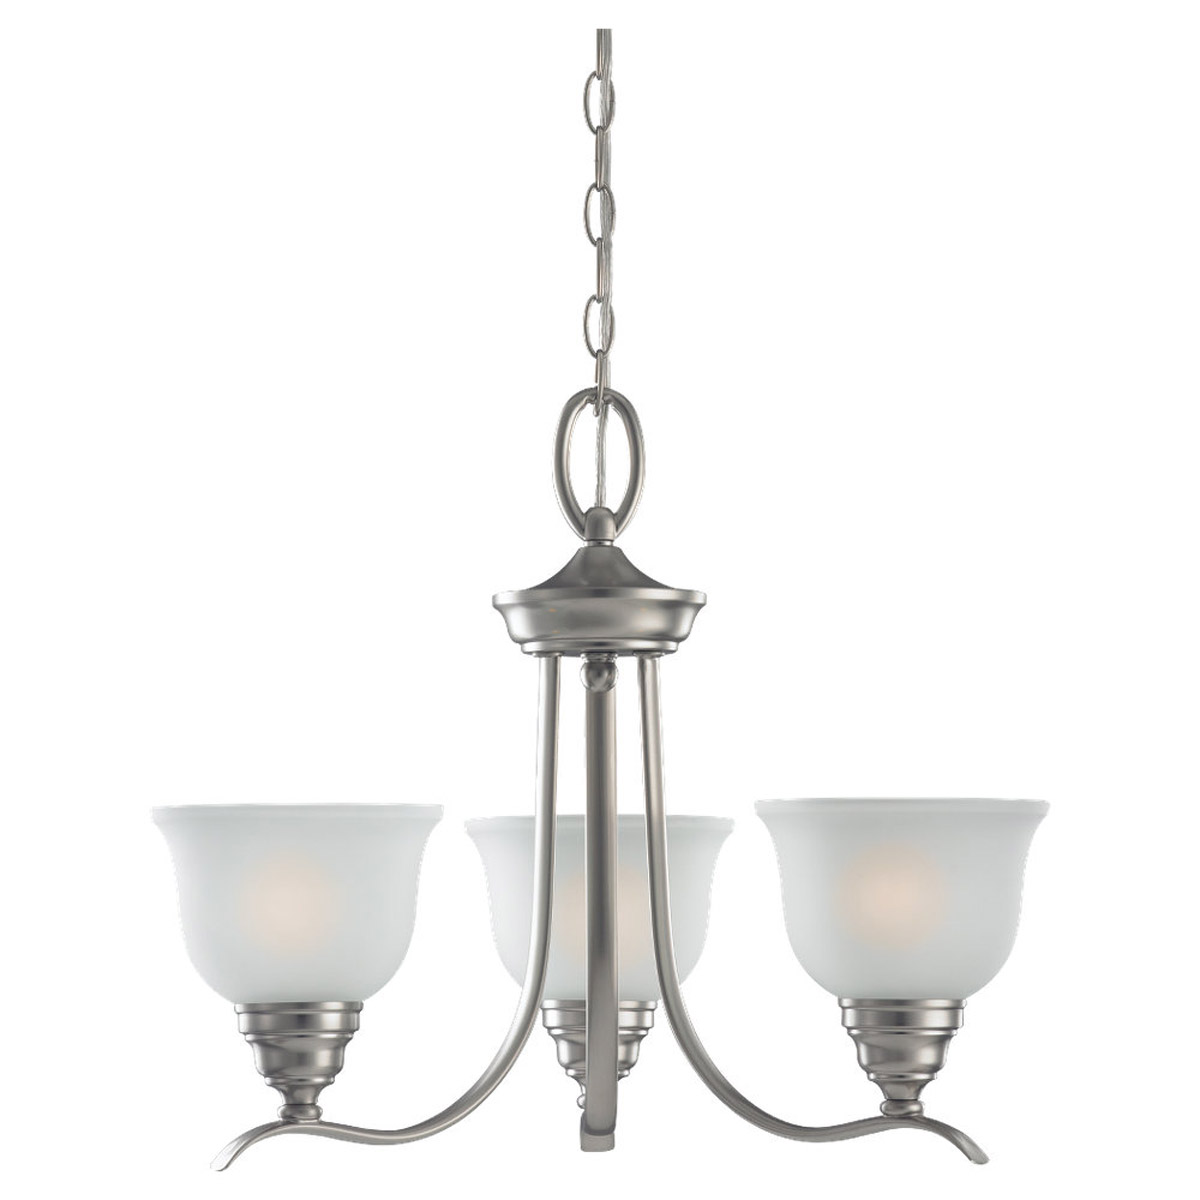 Sea Gull Lighting Wheaton 3 Light Chandelier in Brushed Nickel 31625BLE-962